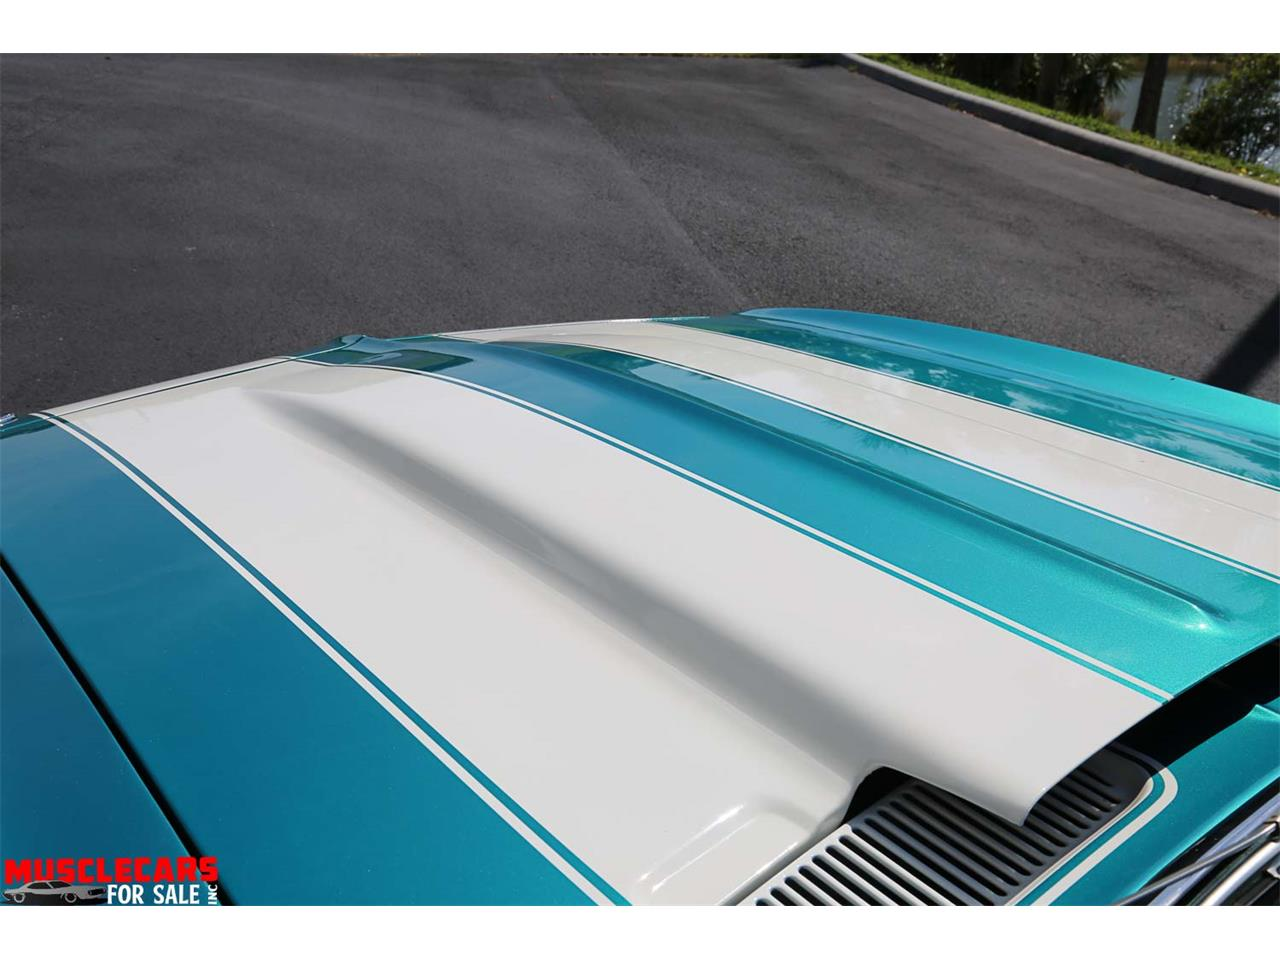 Large Picture of Classic '68 Camaro SS located in Florida - $37,500.00 Offered by Muscle Cars For Sale Inc. - PNWZ